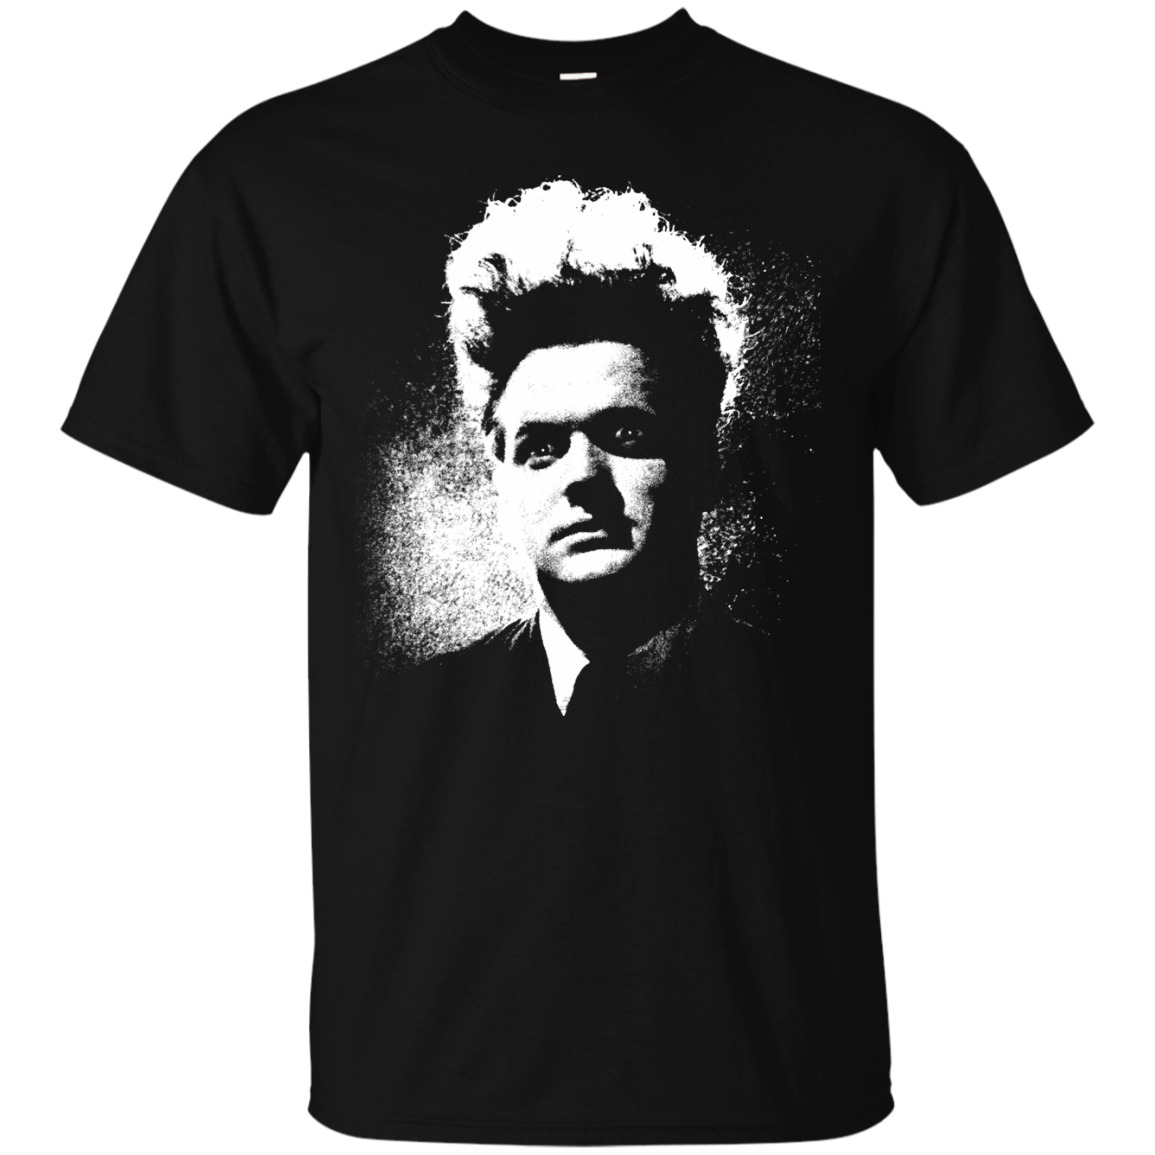 Eraserhead, David Lynch, Movie, Horror, T-Shirt image